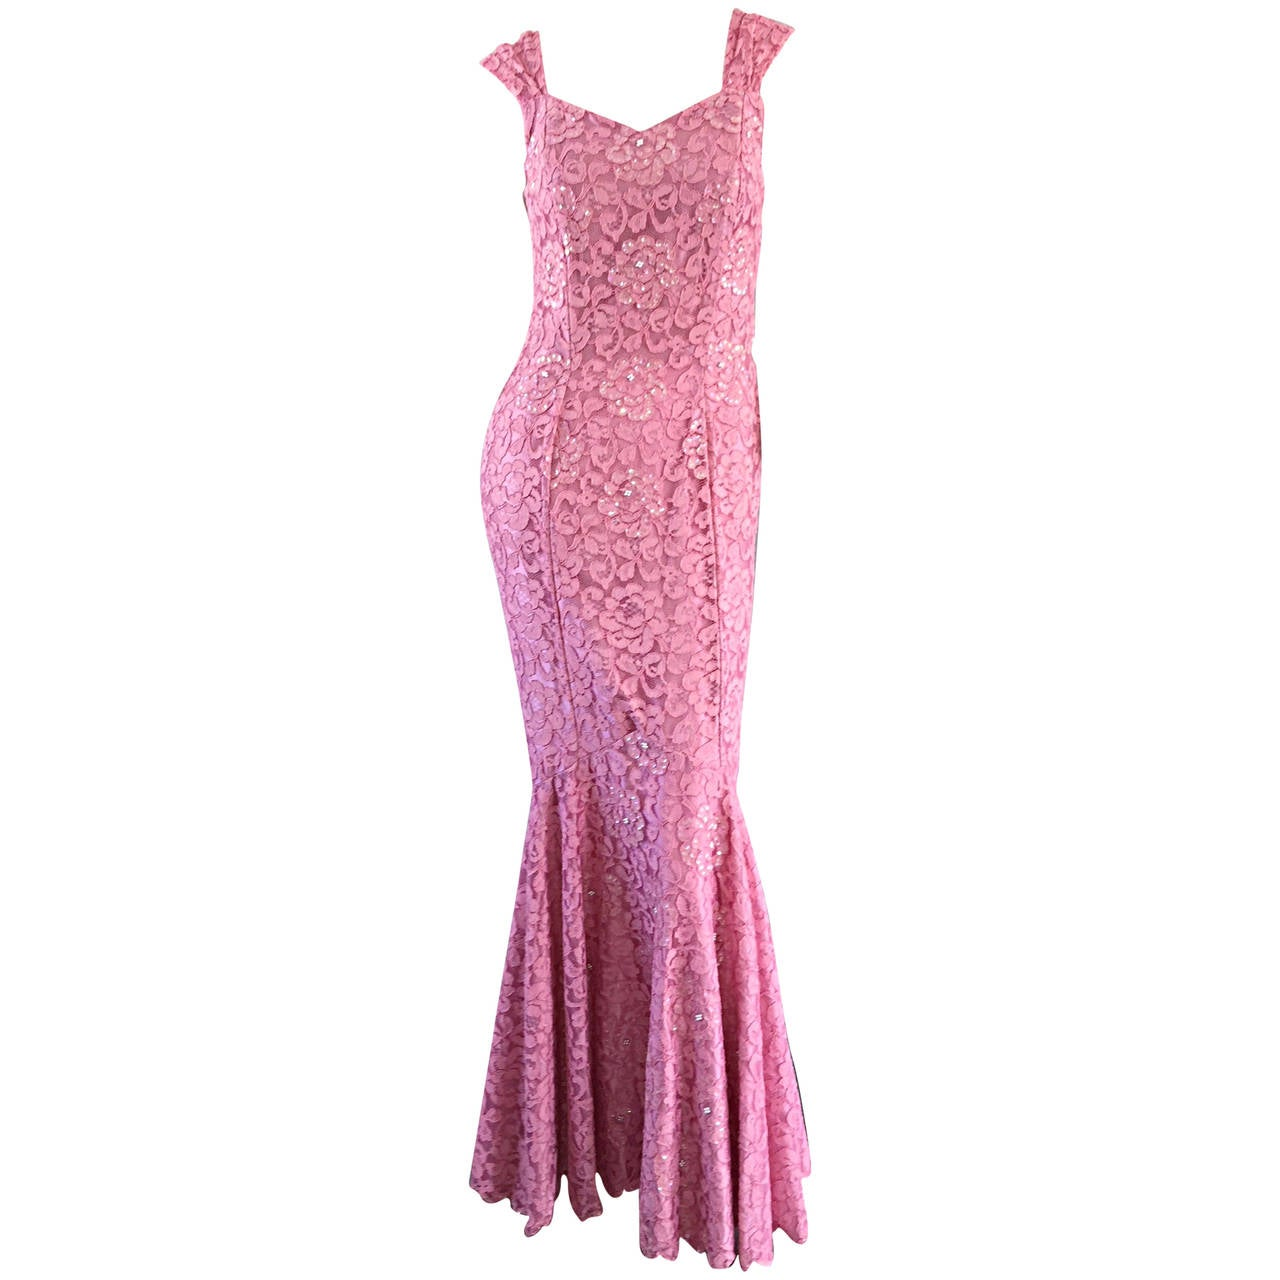 Gorgeous 1950s 50s Couture Pink Vintage Mermaid Dress w/ Chantilly Lace + Sequin 1